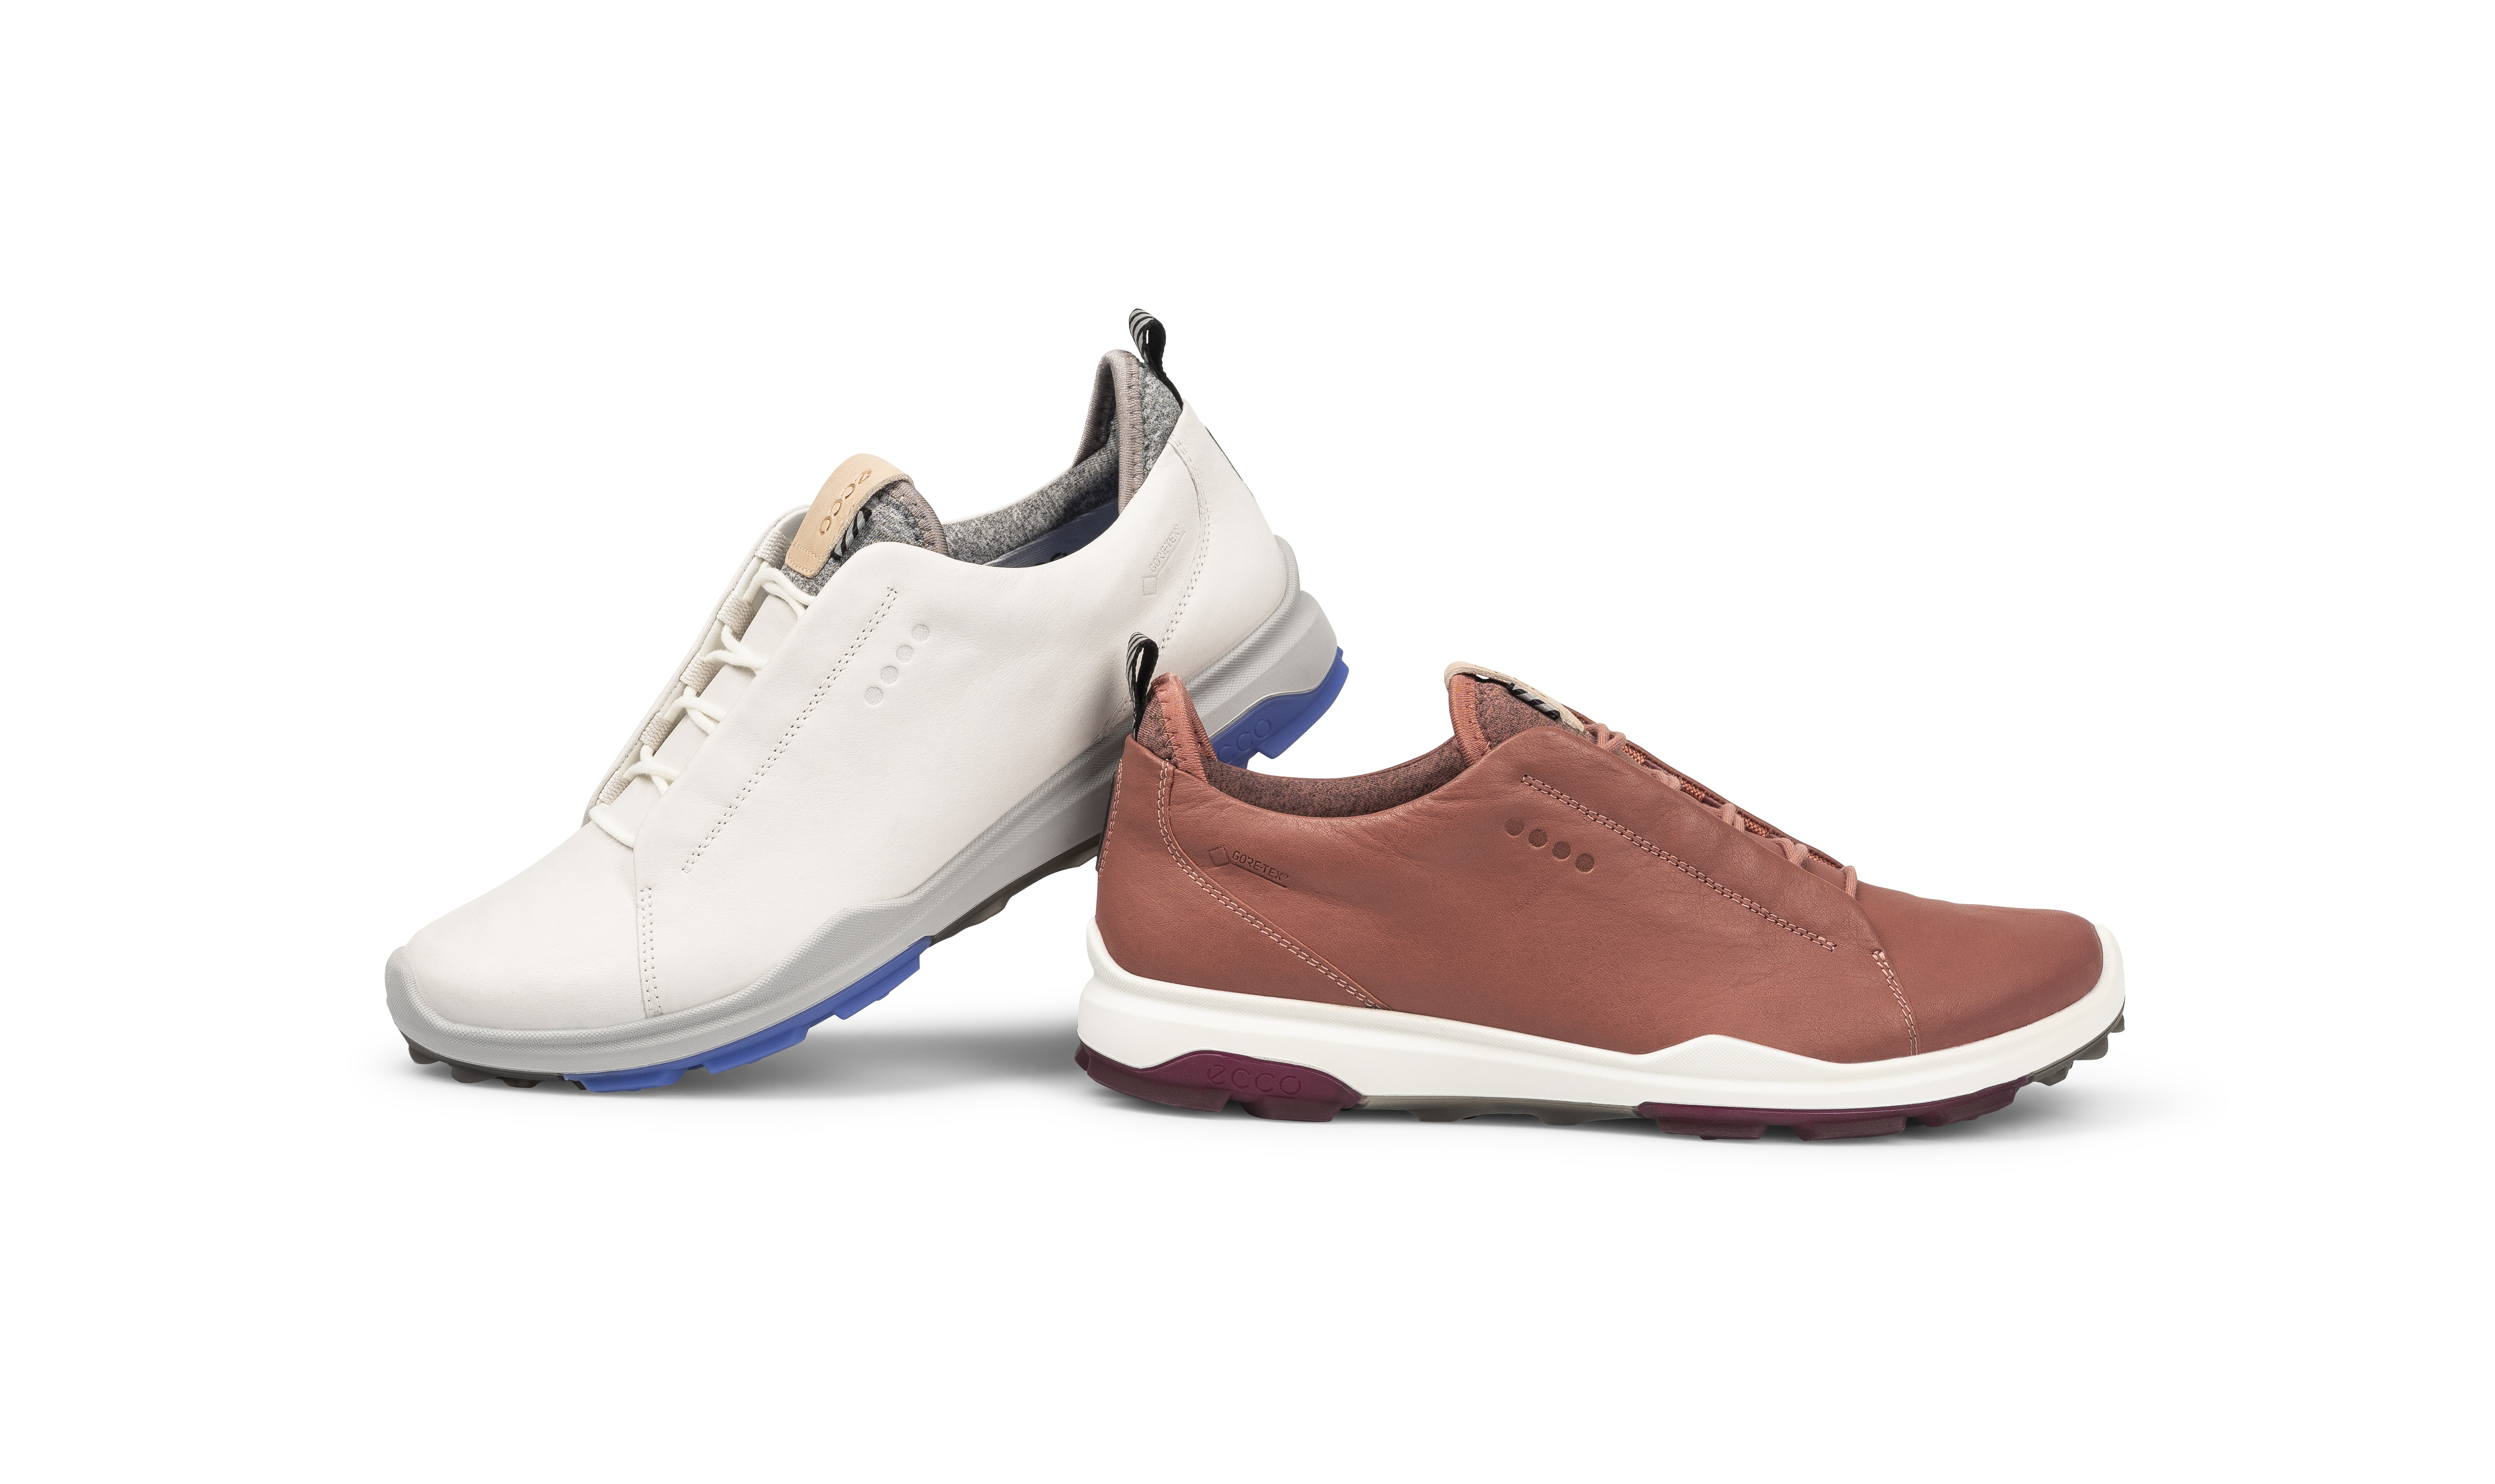 ECCO Golf revamps Biom Hybrid 3 silhouette for 2019